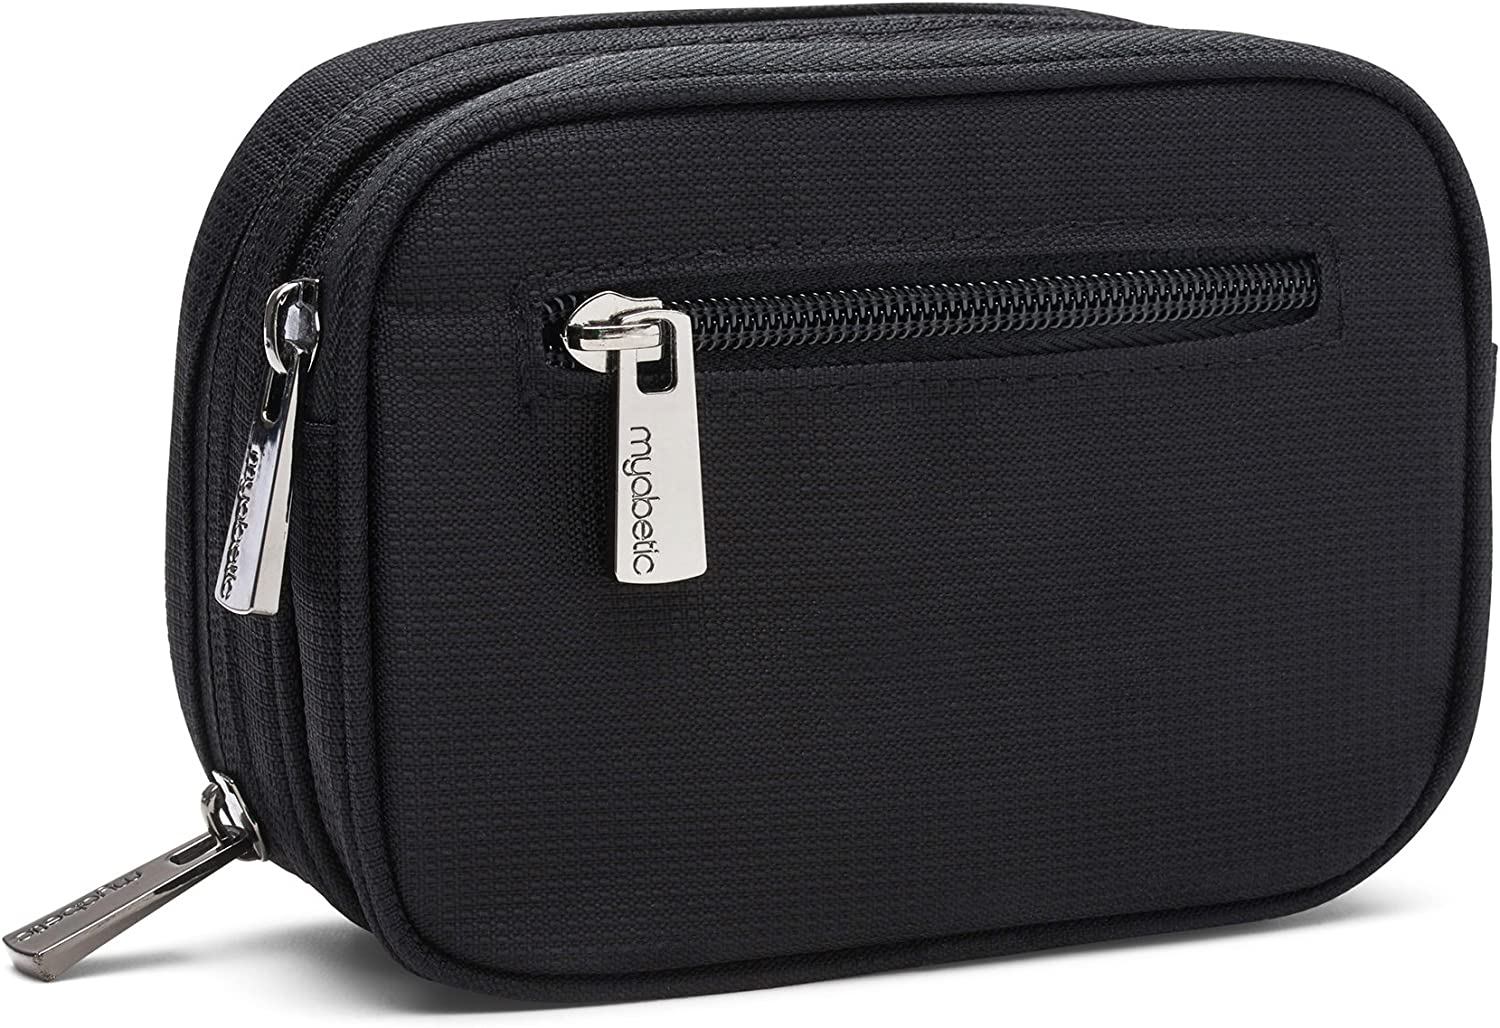 Myabetic Clark Diabetes Supply Case for Glucose Monitoring Tools, Includes Insulation Lining - High Quality Material (Black): Health & Personal Care